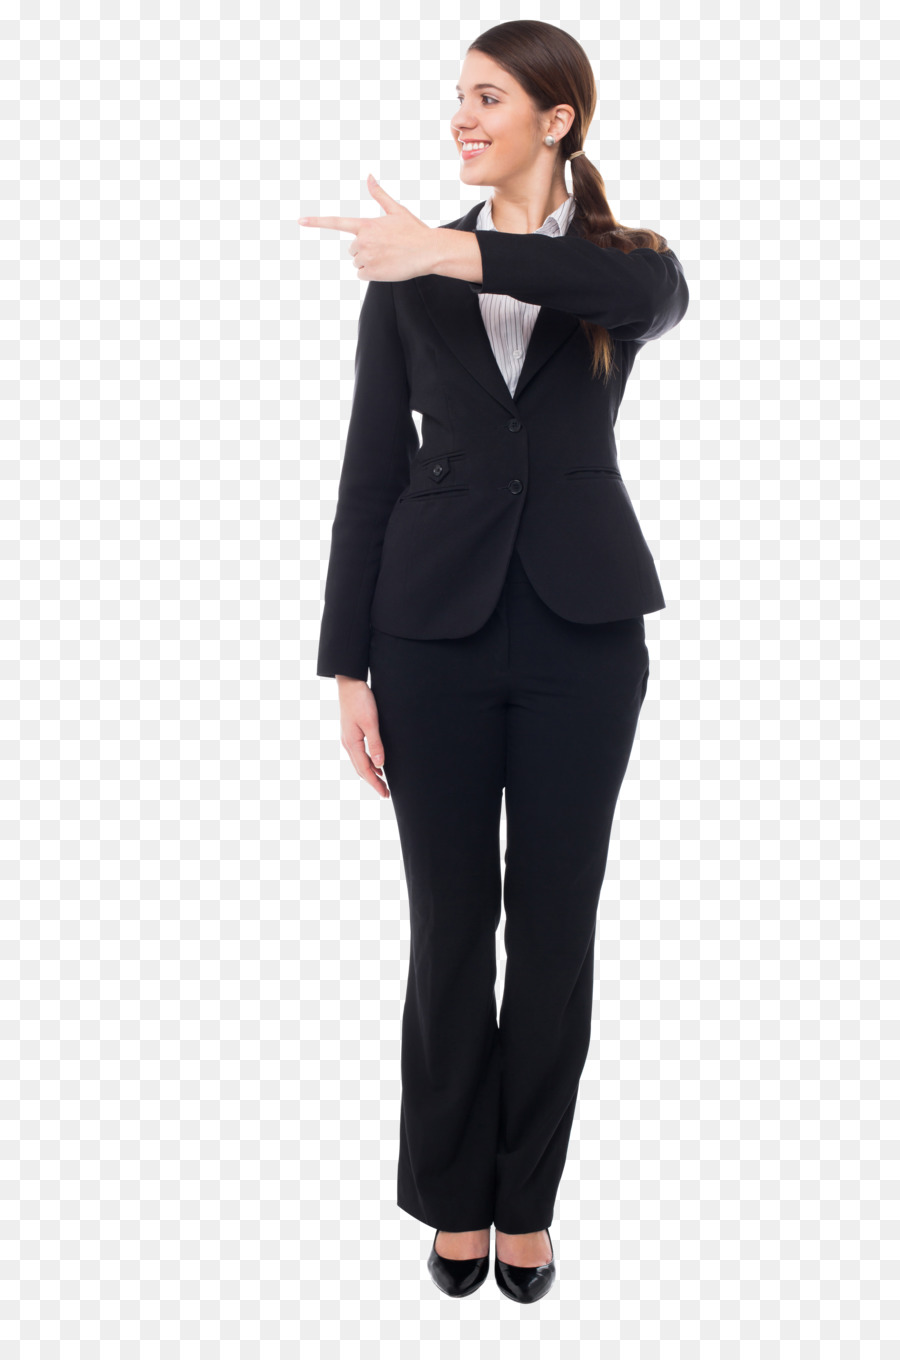 Women in a suit clipart vector royalty free Business Woman clipart - Tuxedo, Clothing, Suit, transparent ... vector royalty free